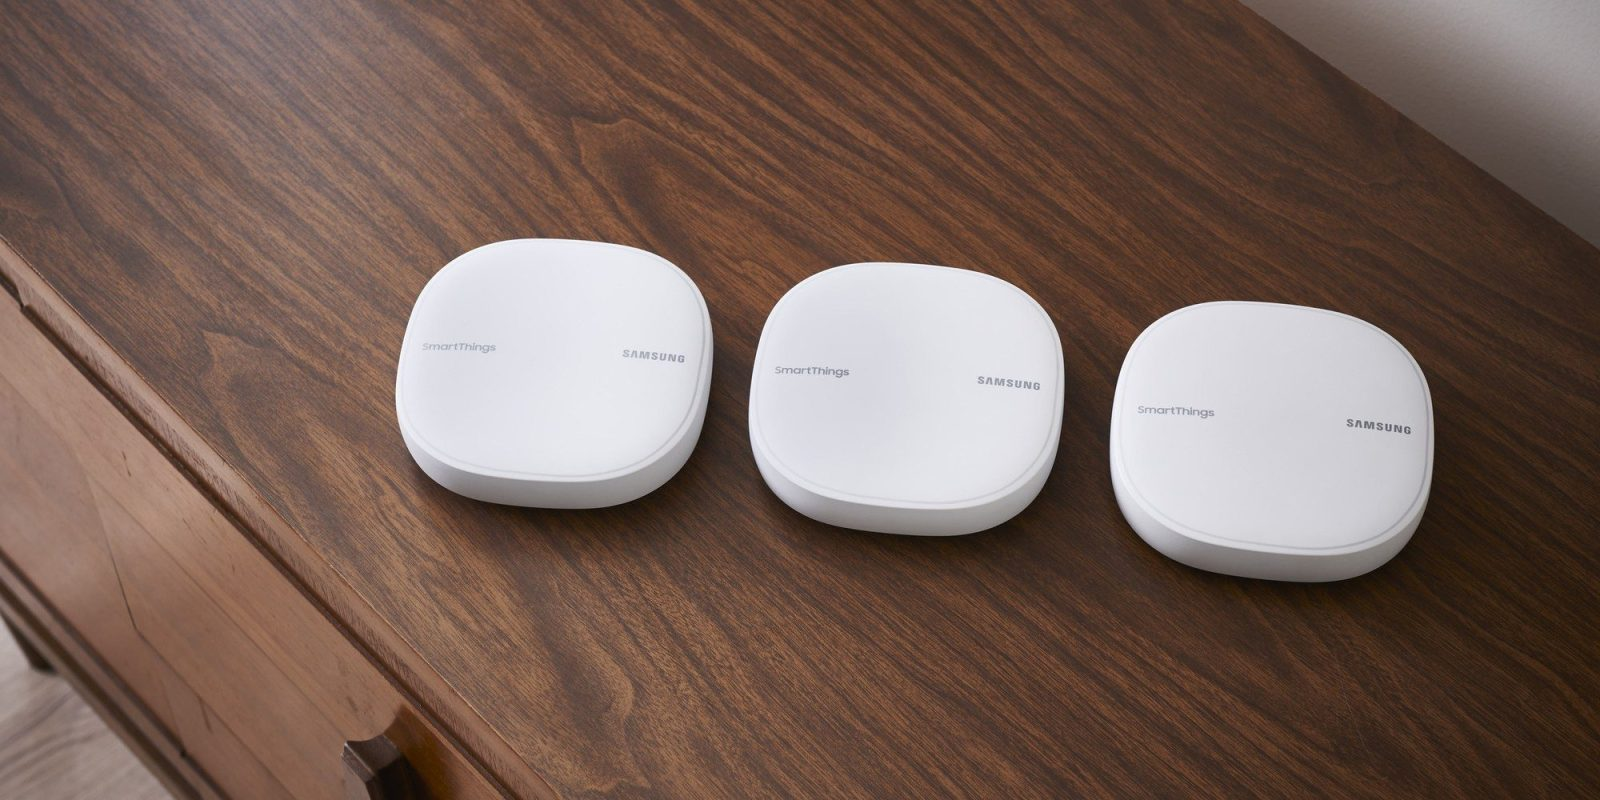 Thursday deals: Samsung SmartThings Mesh Routers, more